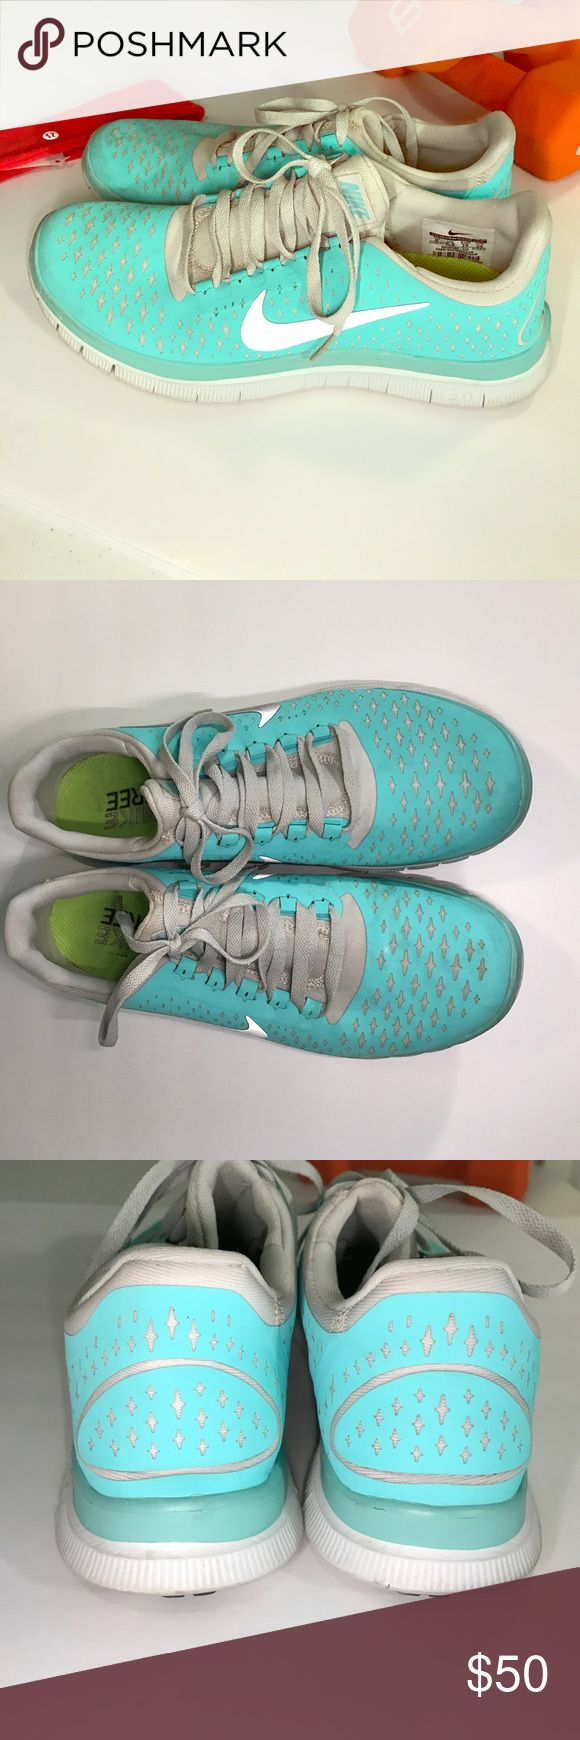 Tiffany Blue Nike Free run Tiffany Blue Nike Free run  Gently used about 2 or 3 times. GREAT condition.   Make an offer!  (*No original box, will ship in different shoe box) Nike Shoes Athletic Shoes